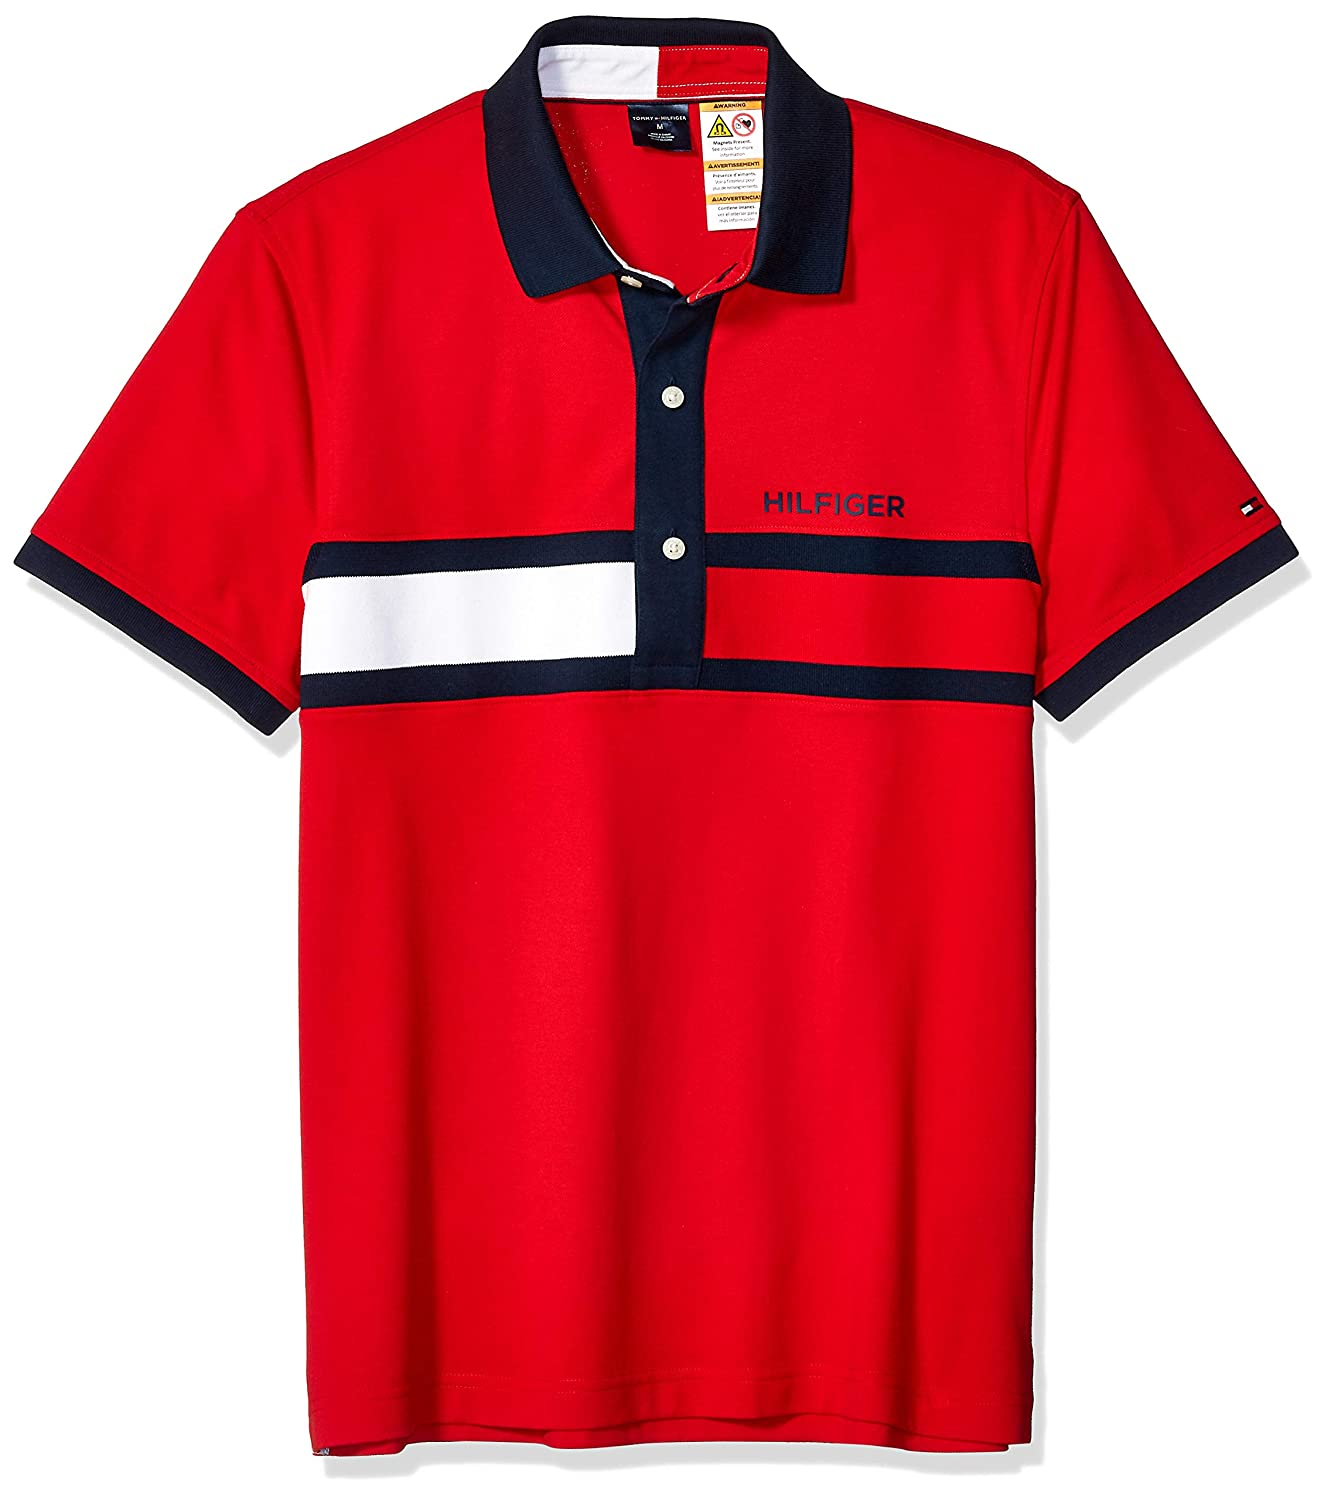 66938487e Tommy Hilfiger Mens Adaptive Polo Shirt with Magnetic Buttons Custom Fit  Polo Shirt: Amazon.ca: Clothing & Accessories